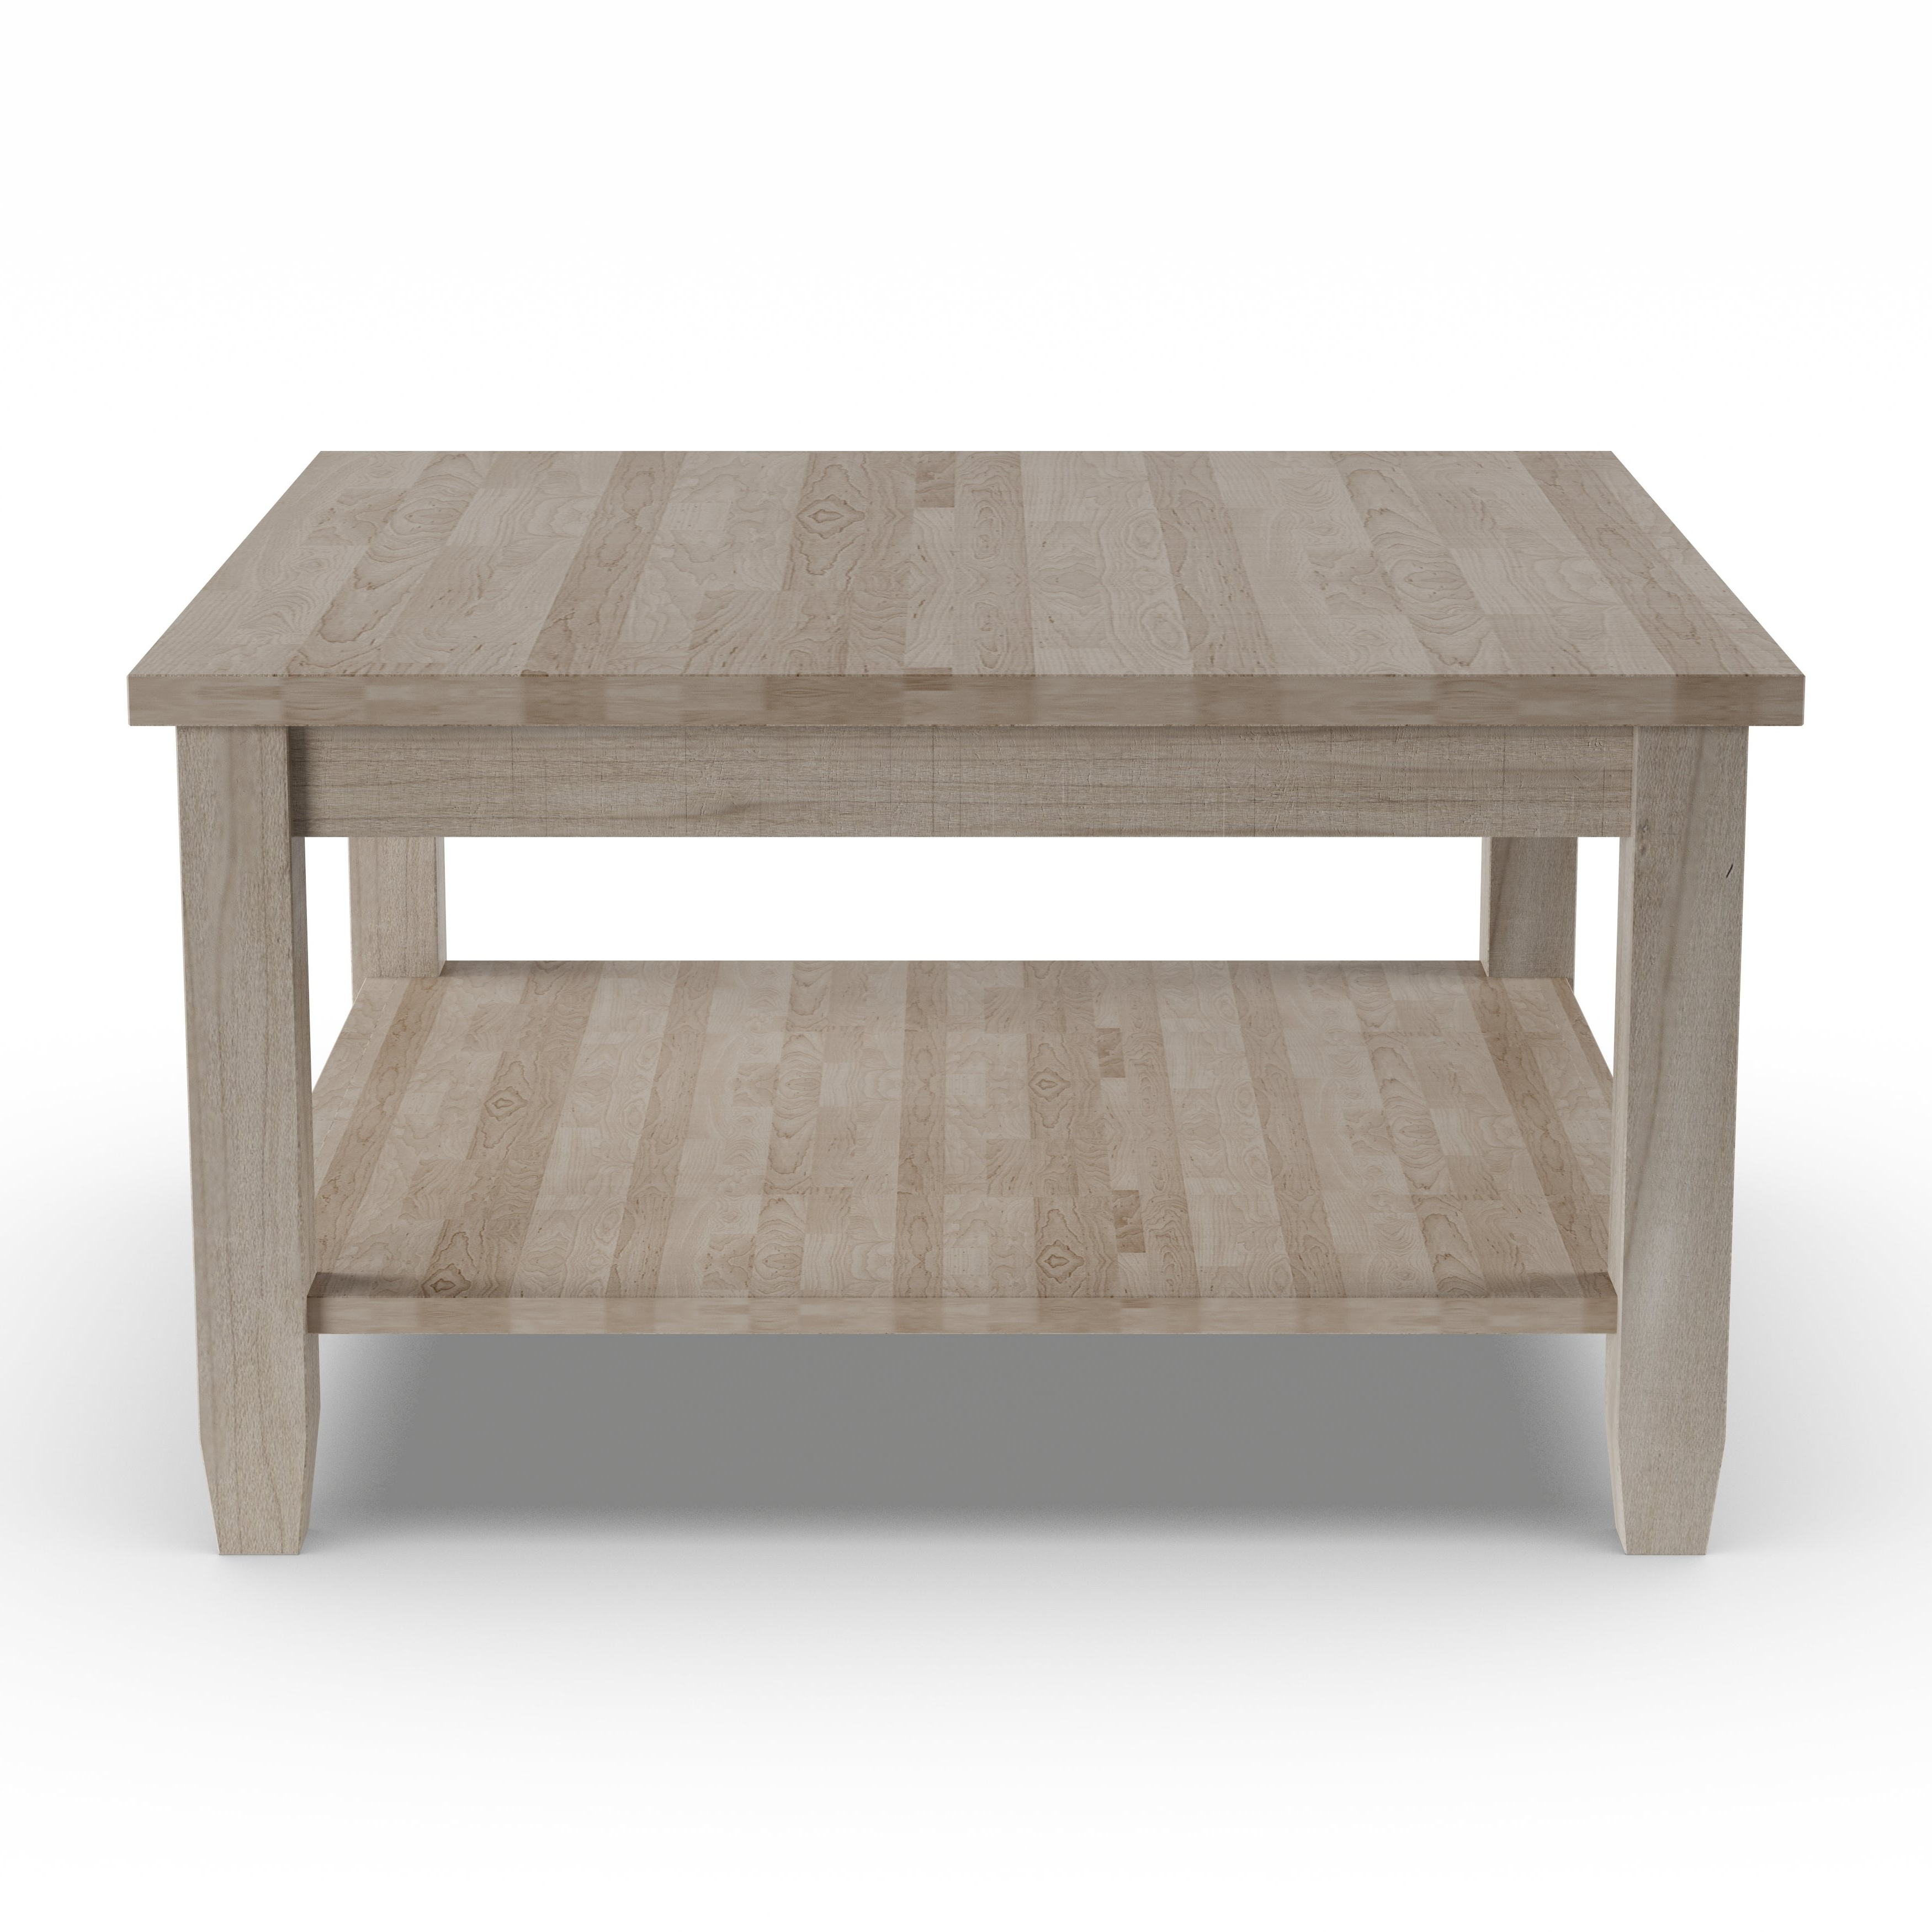 Copper Grove Chrysotome Square Unfinished Solid Parawood Coffee Table With Regard To 2019 Unfinished Solid Parawood Square Coffee Tables (View 3 of 20)